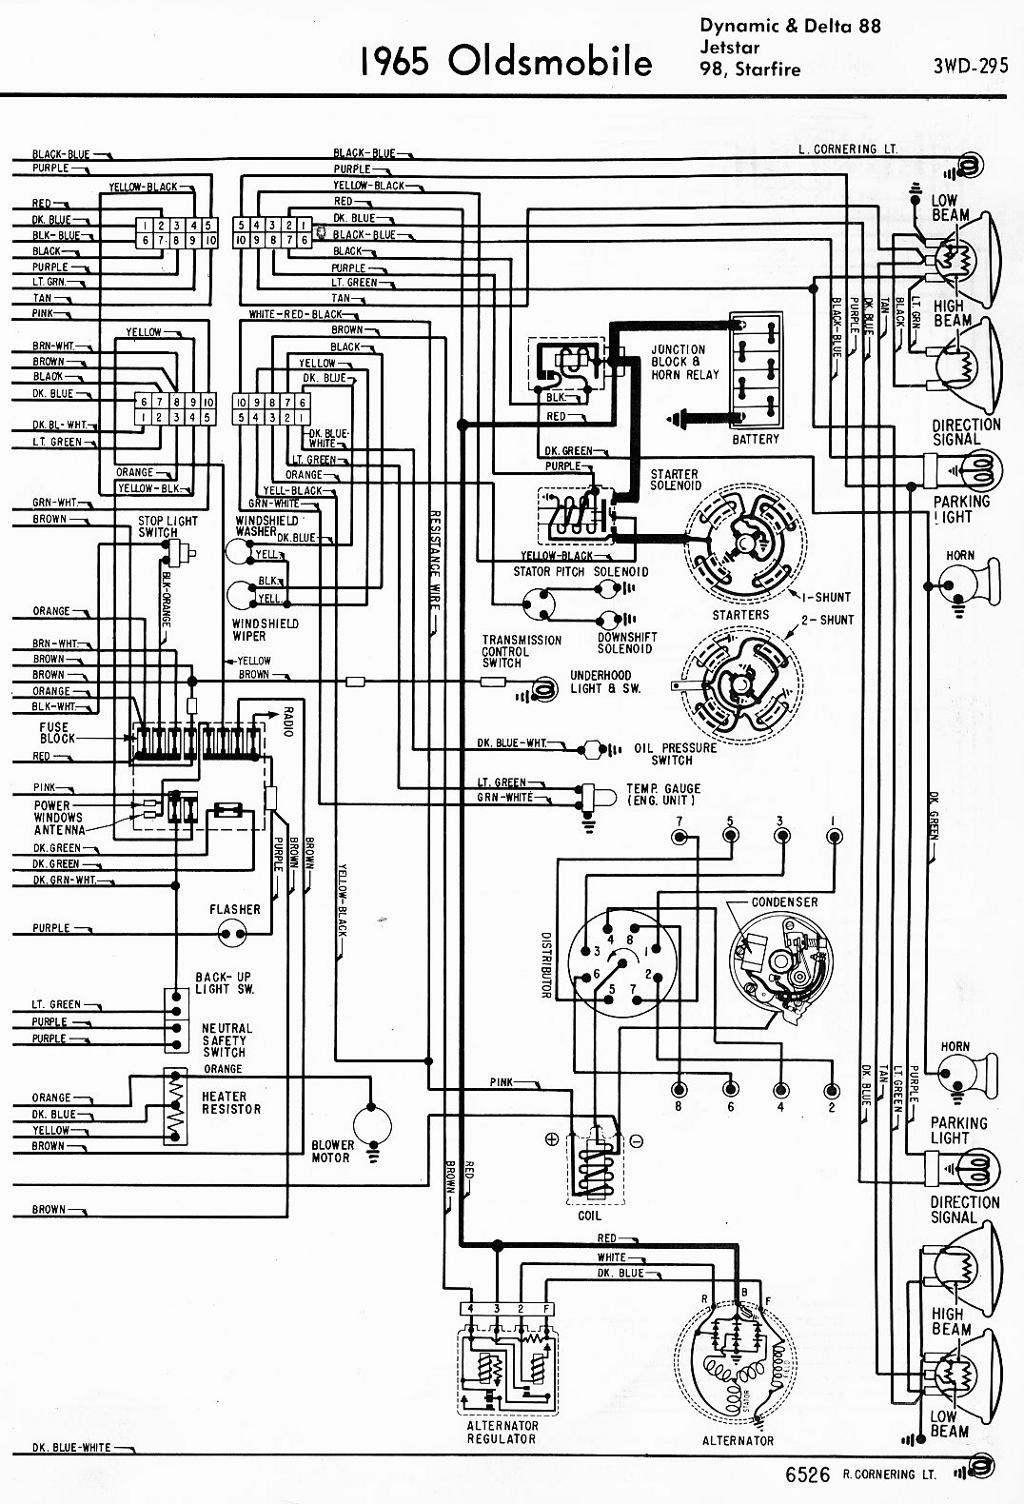 T12391592 2002 aurora 3 5 crankshaft sensor likewise Idle Control Sensor Location Oldsmobile together with 83 Vortec V8 Truck as well 1998 Oldsmobile Aurora Problems Wiring Diagrams likewise Oldsmobile Aurora 1997 Cooling Fans. on 1999 oldsmobile aurora engine diagram